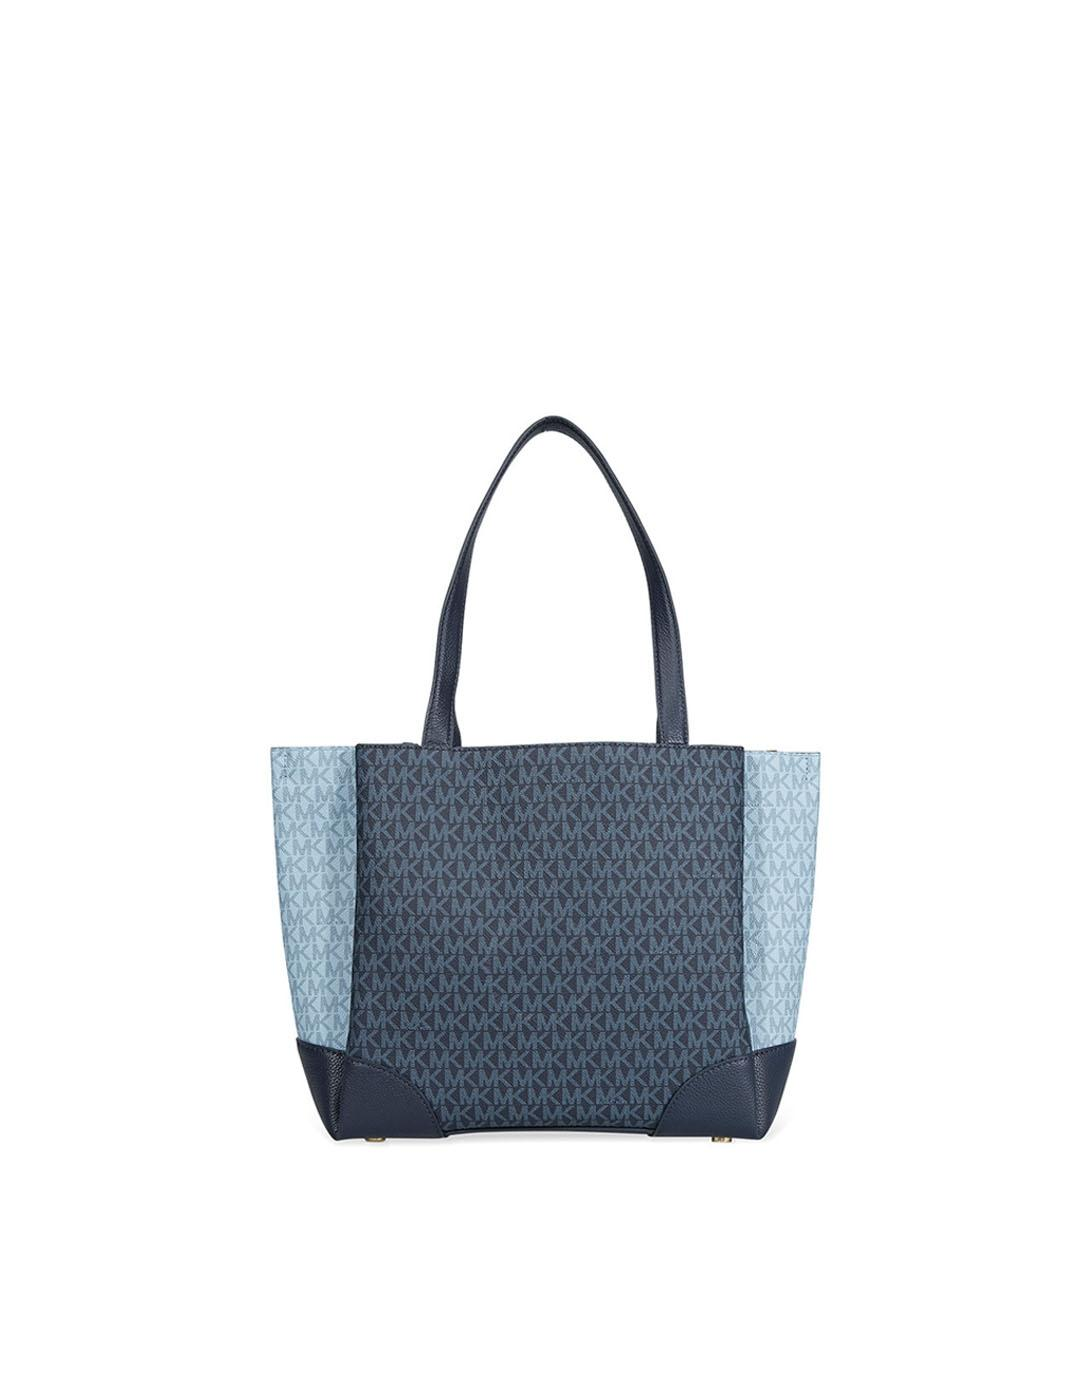 Bolso Michael Kors azul Gala Medium Blue